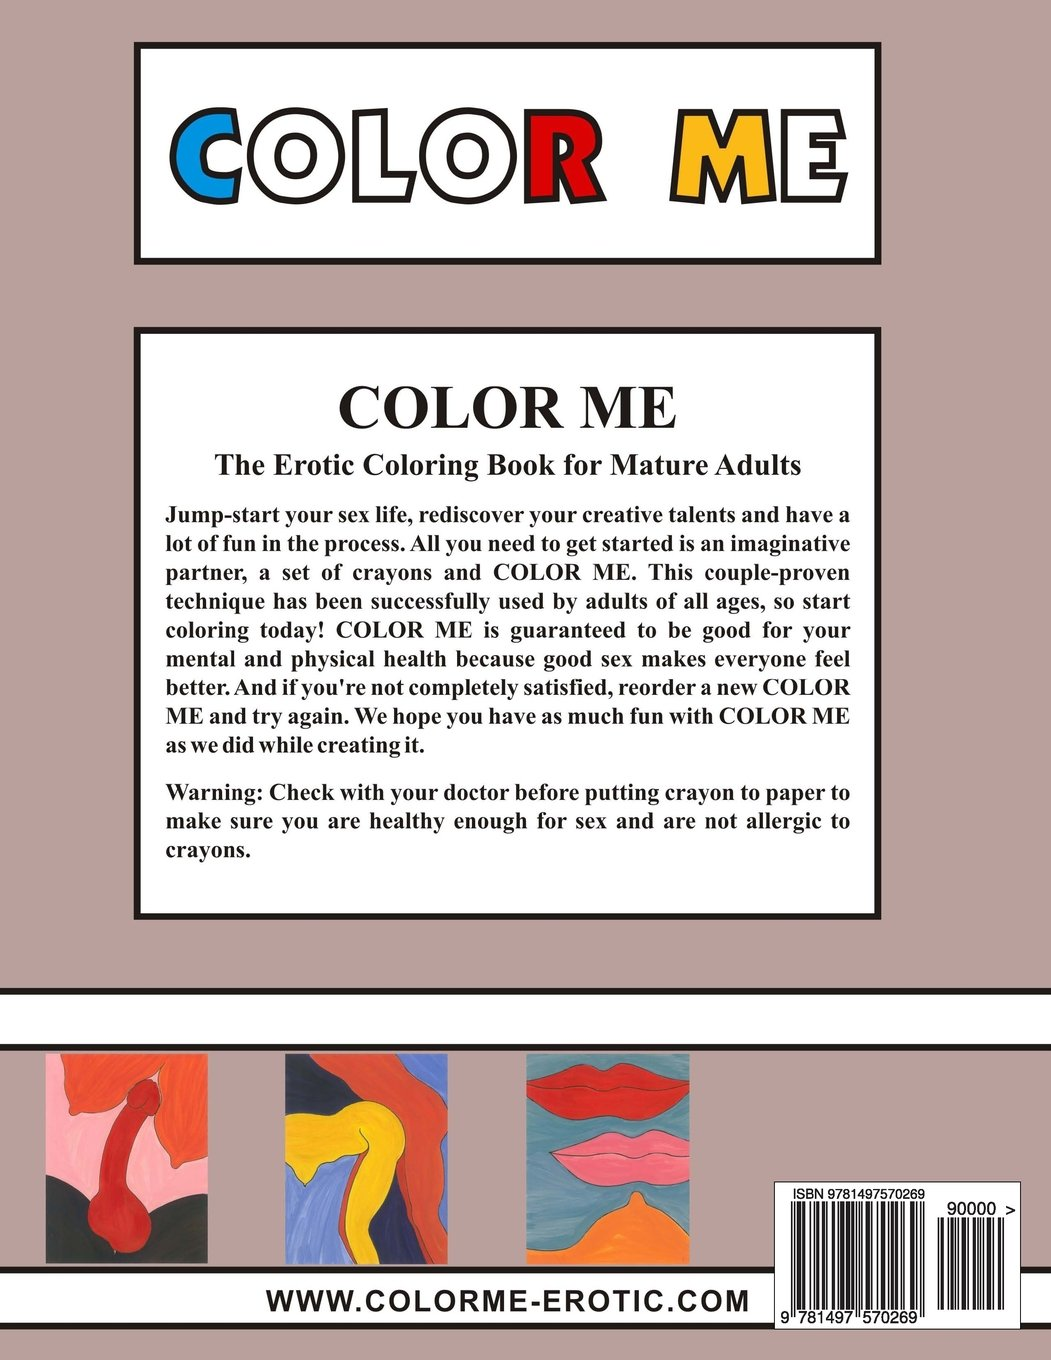 Amazon.com: Color Me: The Erotic Coloring Book (9781497570269 ...